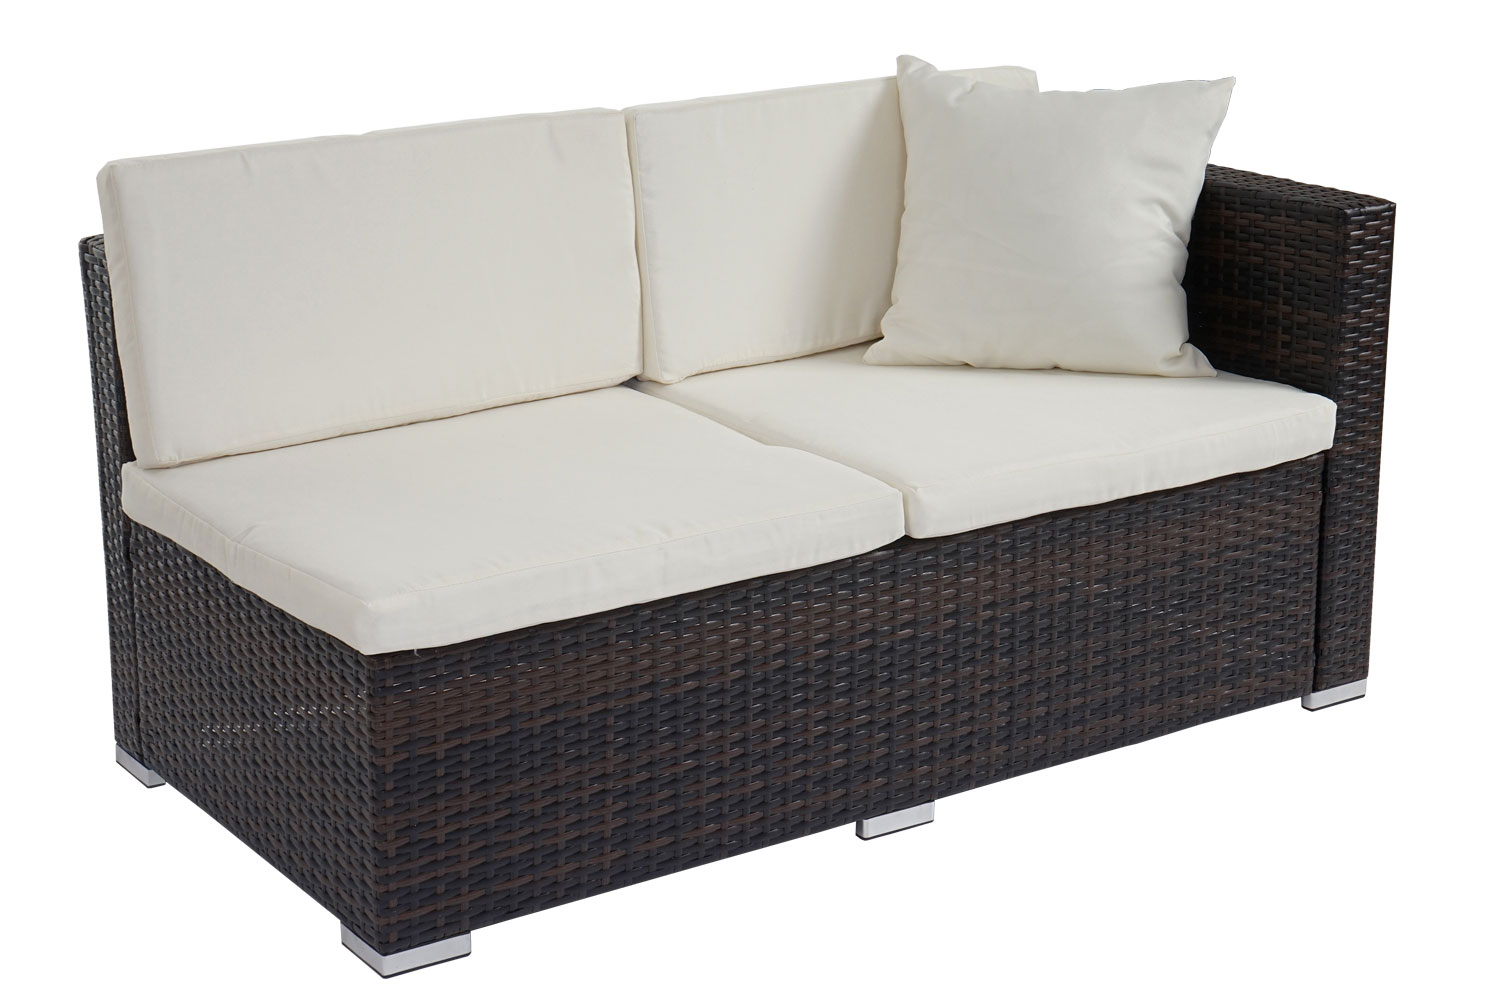 Poly rattan sofa garnitur rom basic sitzgruppe lounge set for Sofa garnitur